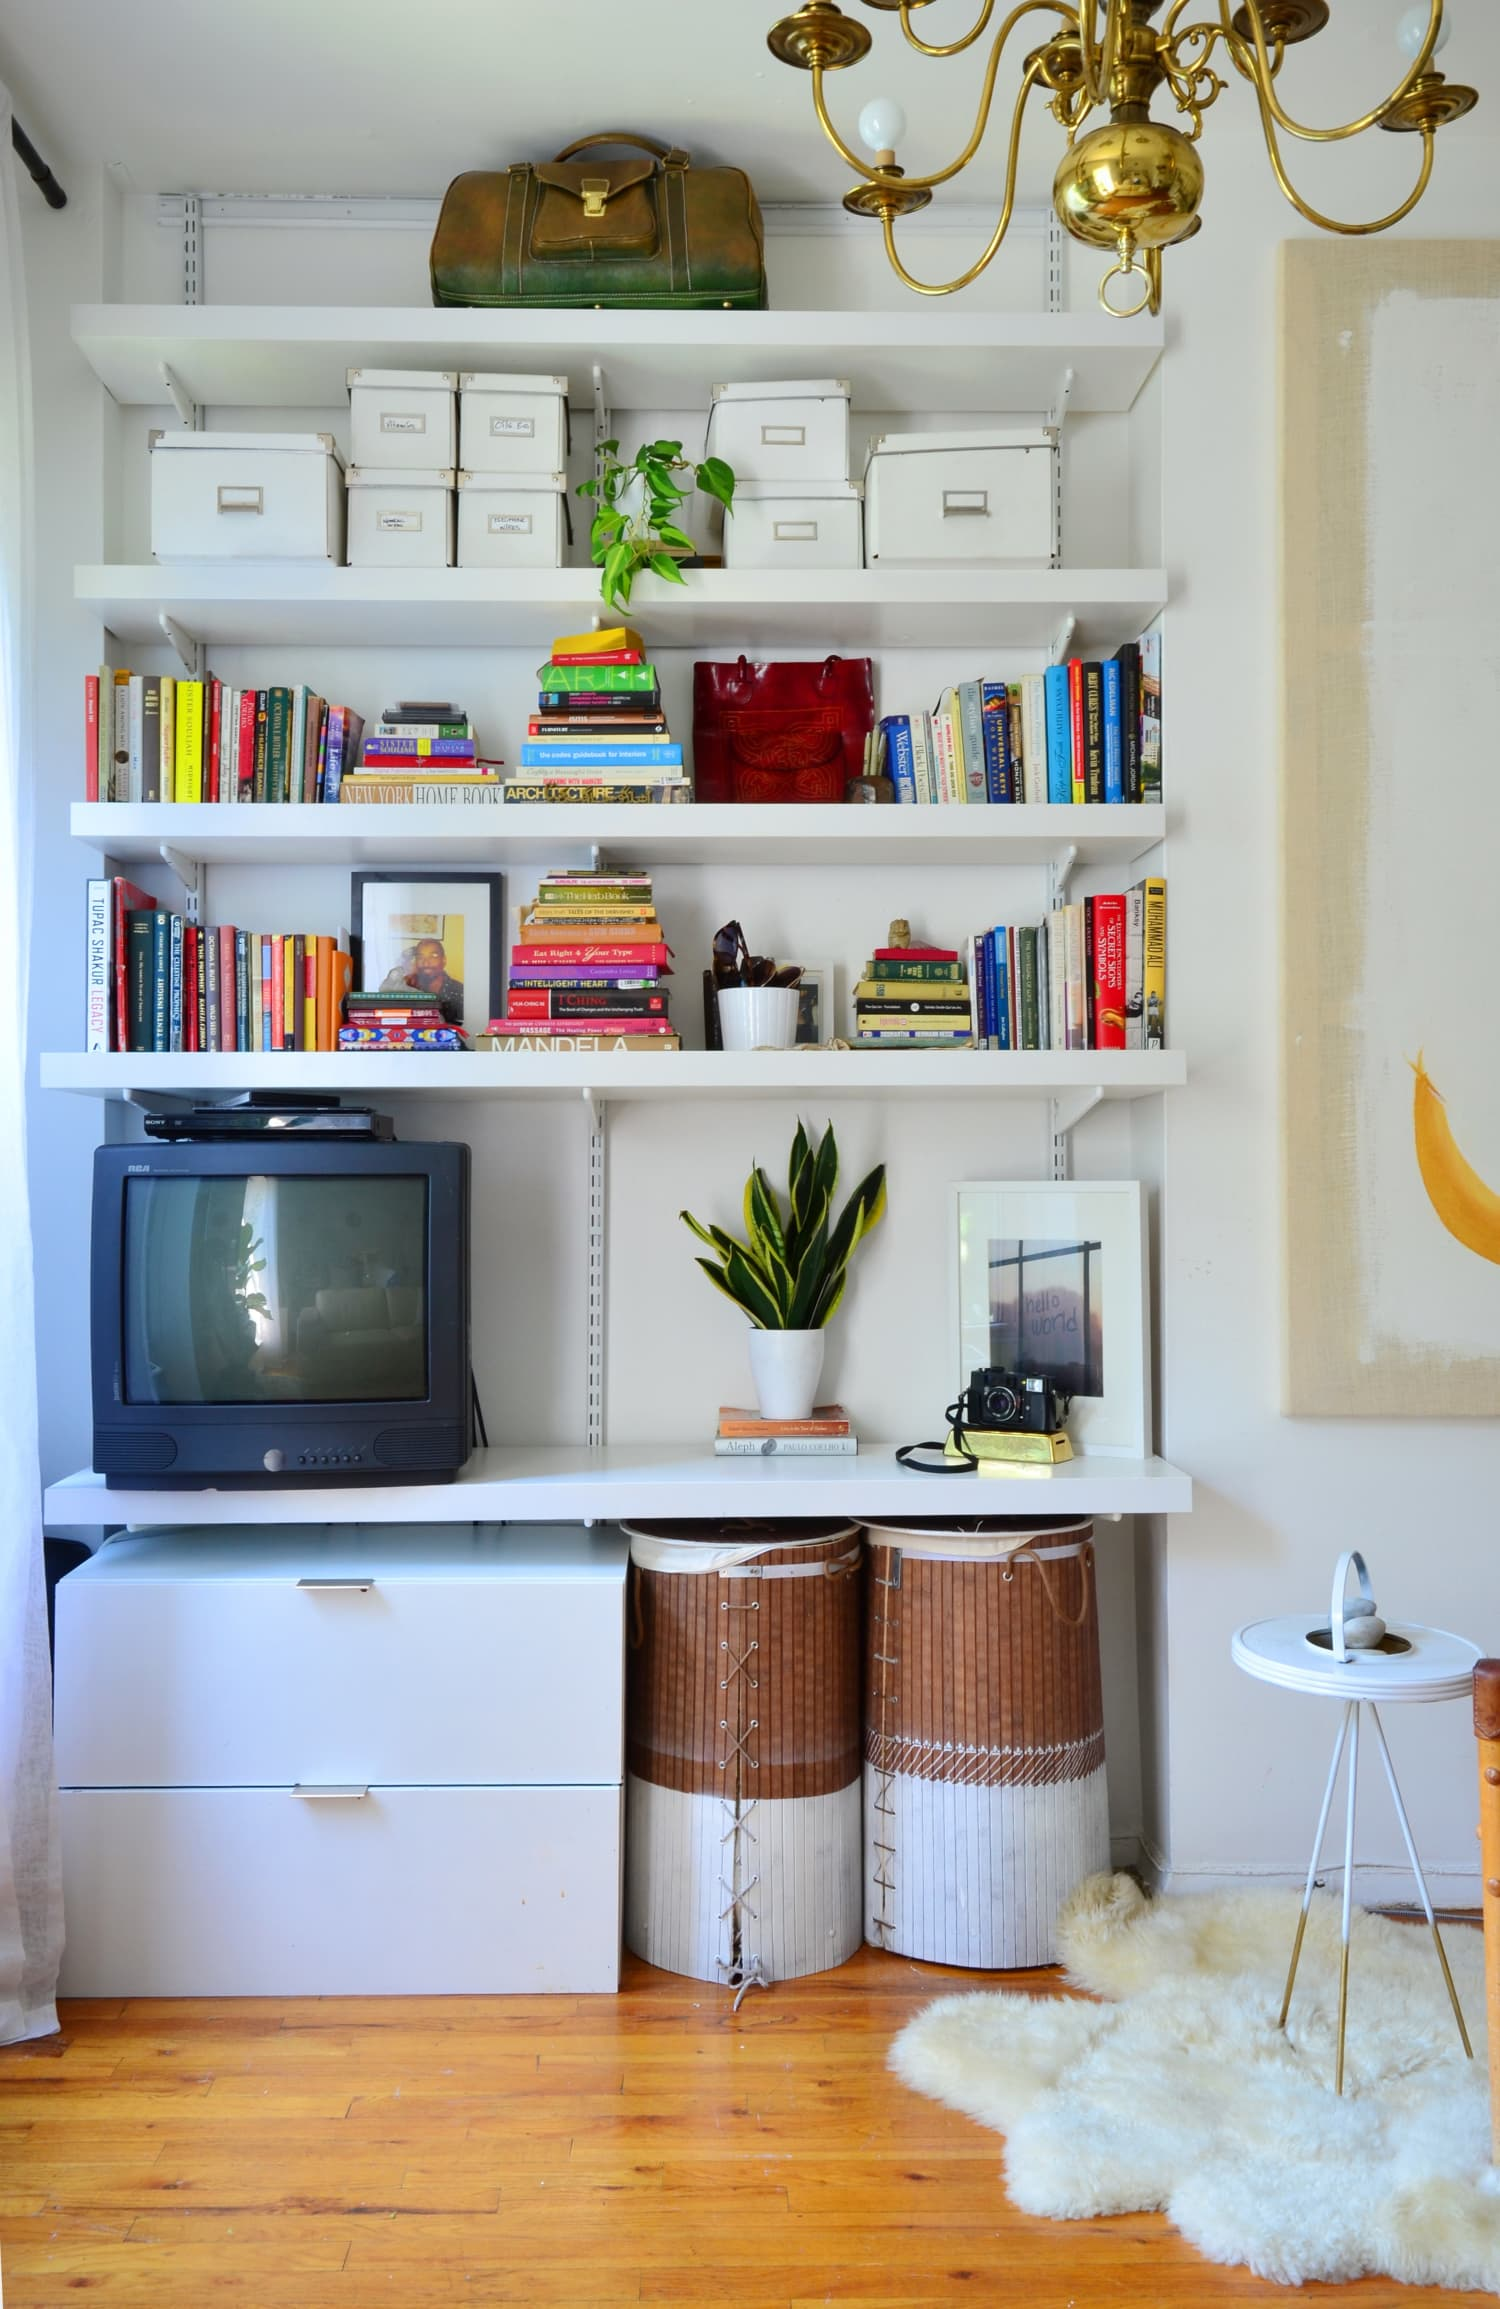 Shelf Help: Strategies to Style Your Open Shelves (And Keep Them Looking Neat)